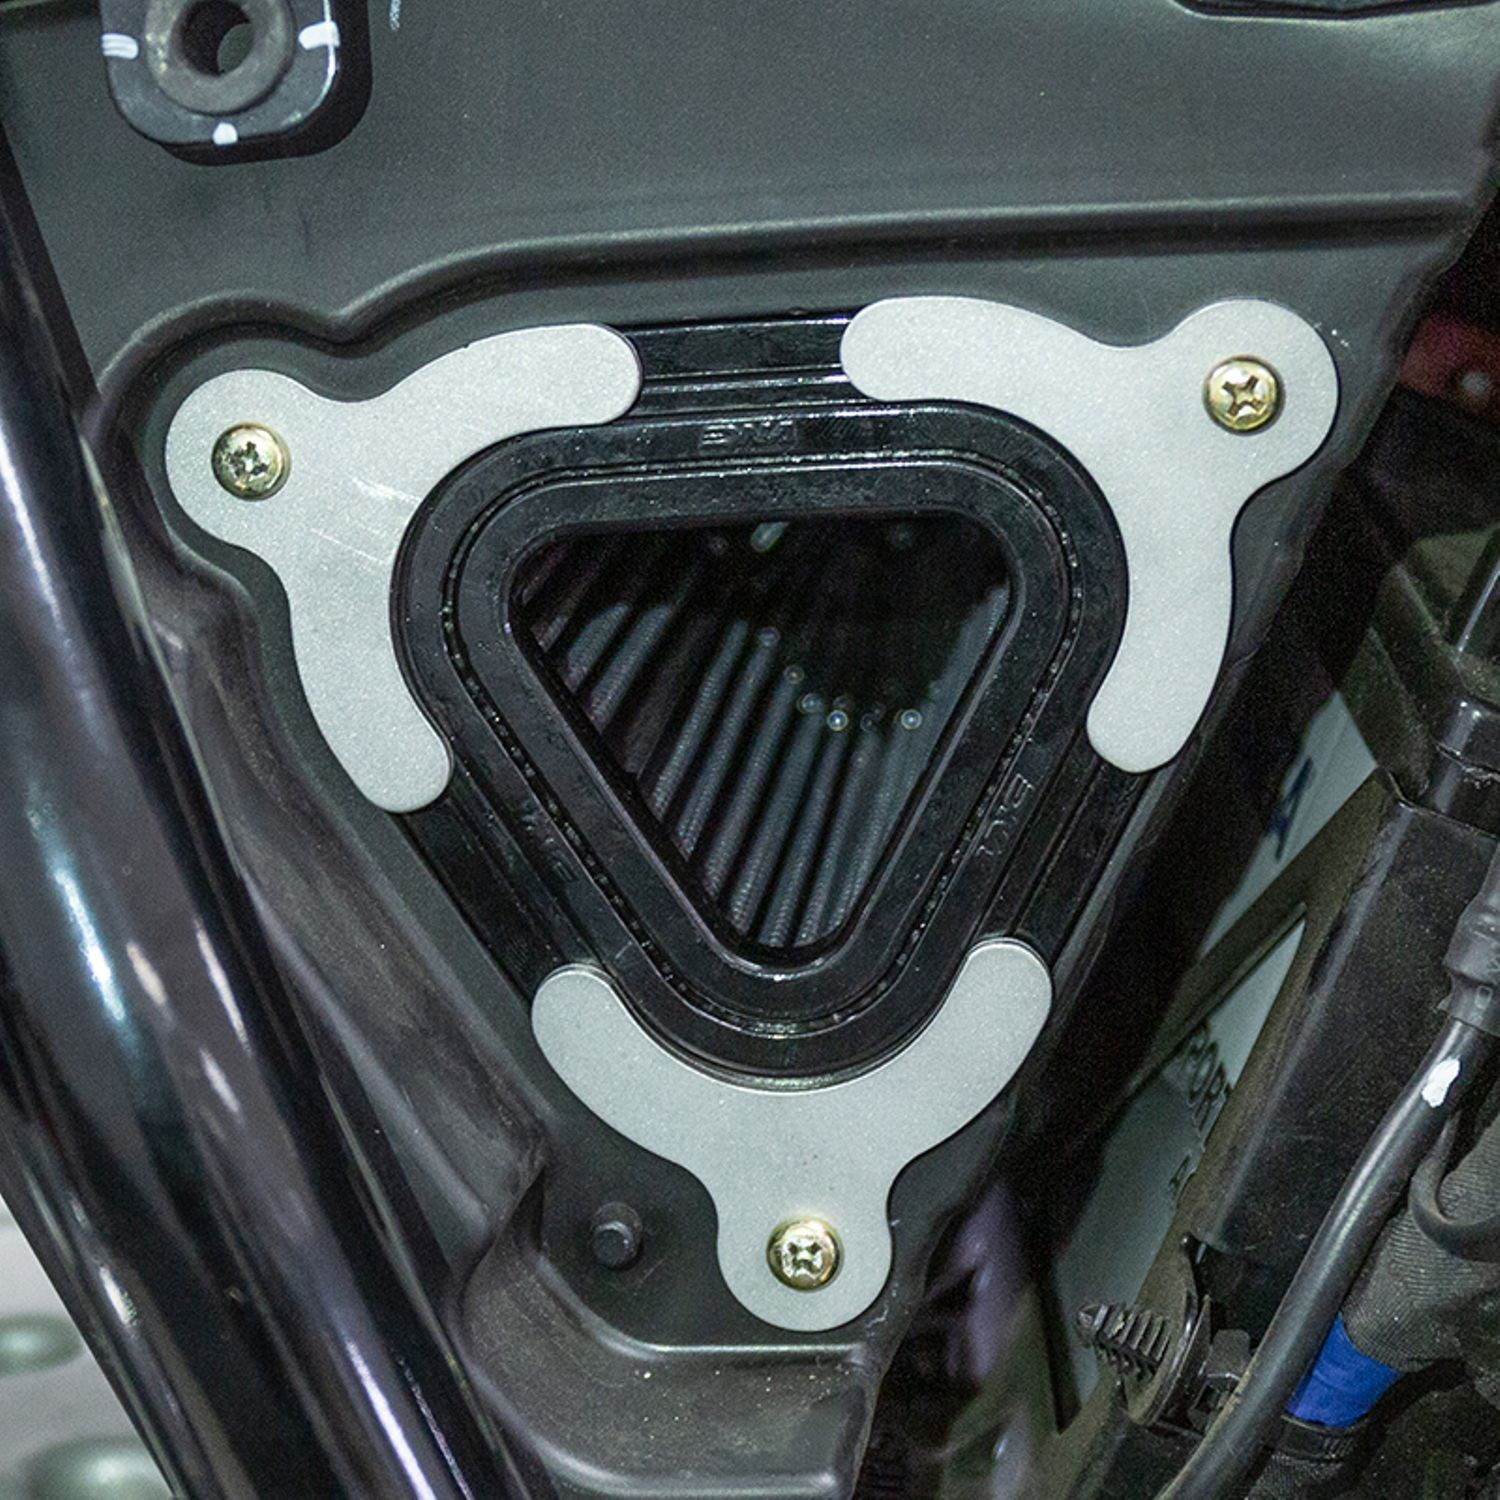 S&SHigh-Flow Air Intake Eliminator Plate Kit for Royal Enfield 650 Twins